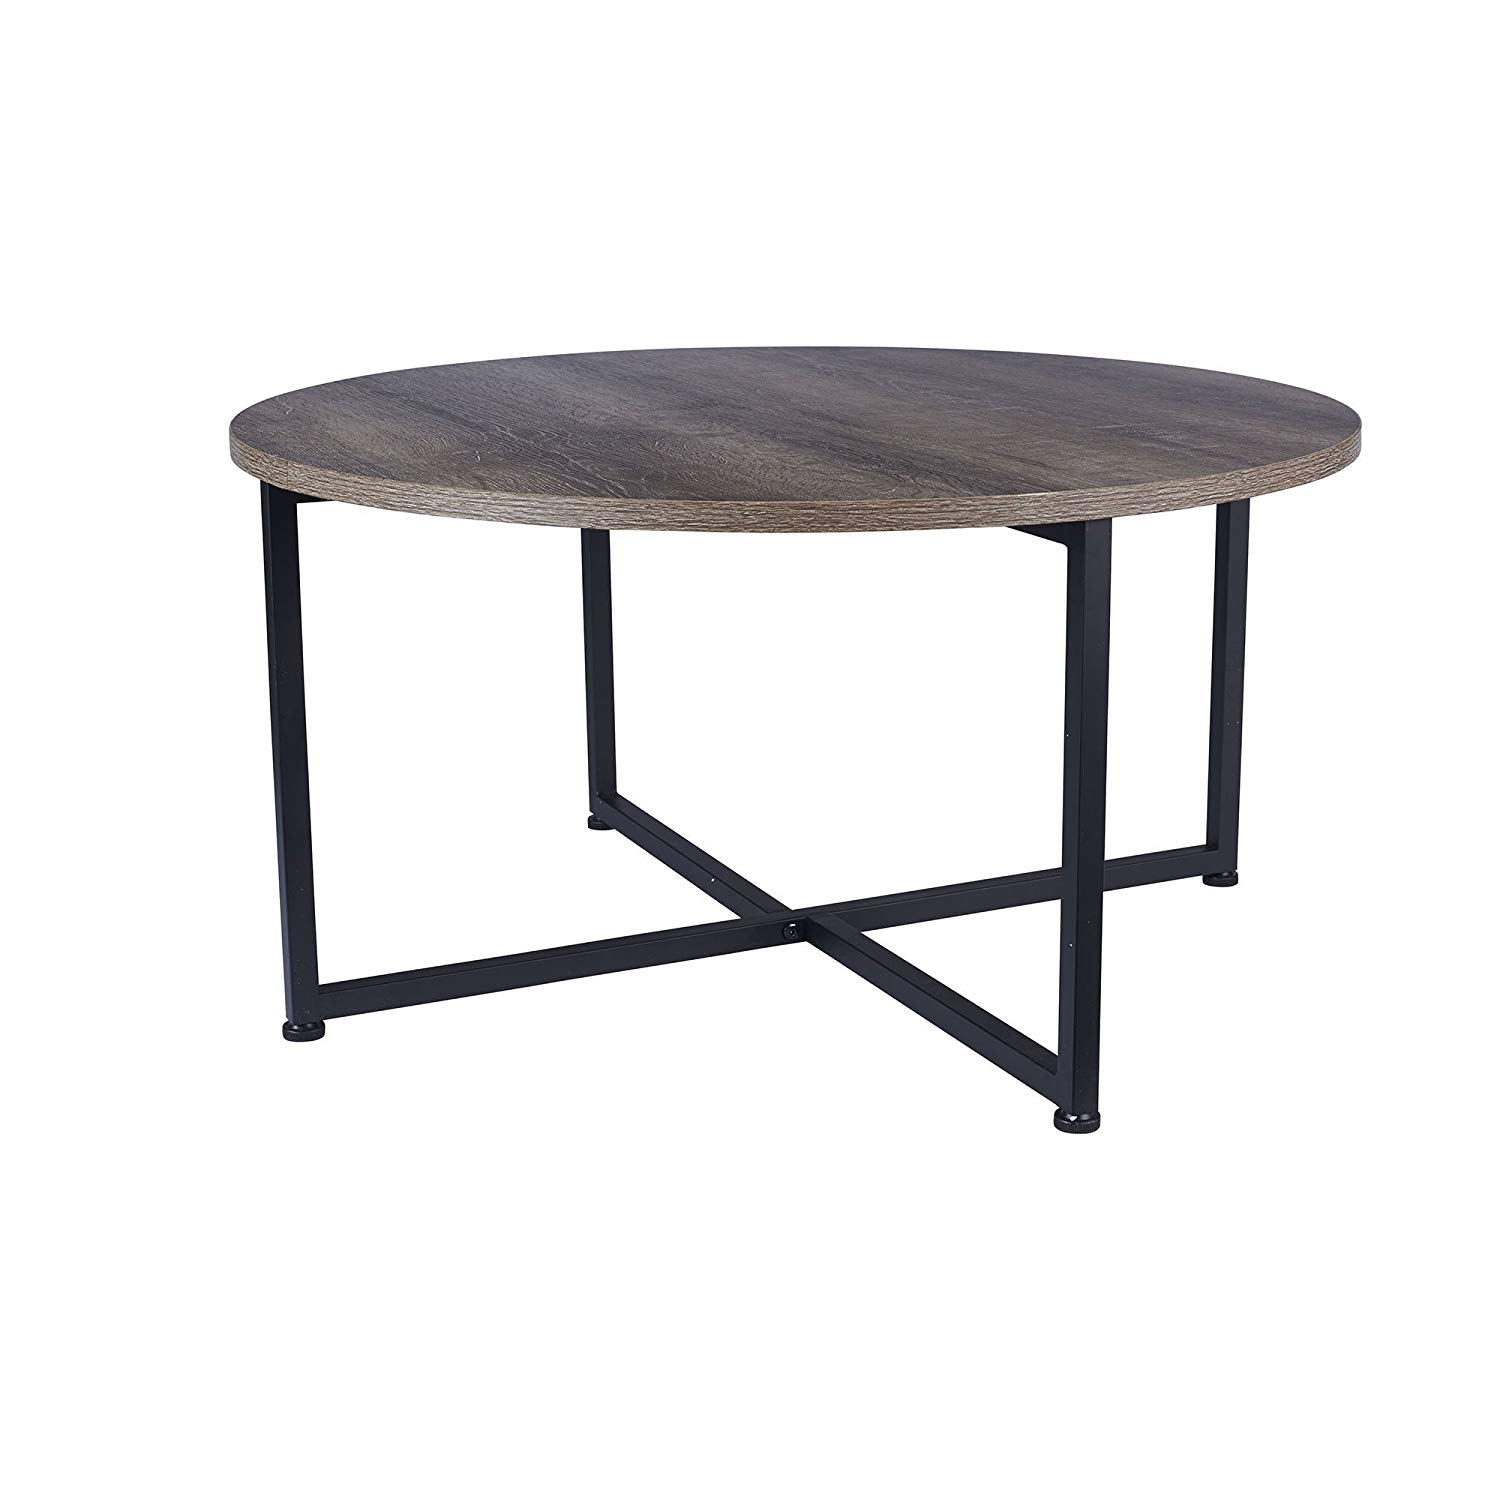 household essentials ashwood round coffee table storage accent black room distressed gray brown metal frame kitchen dining dorm necessities tiered entry and mirror set pottery